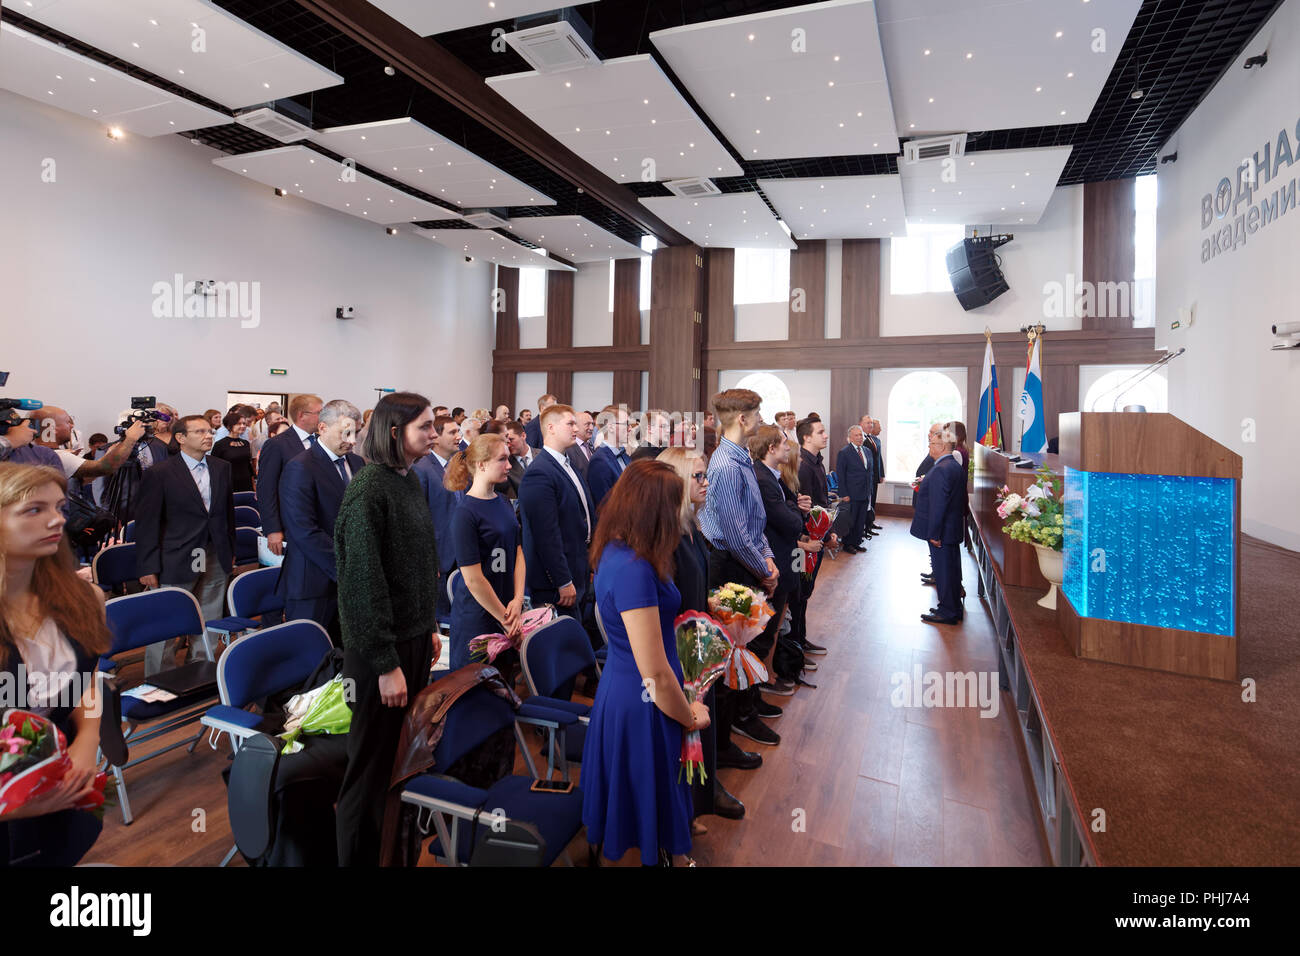 St. Petersburg, Russia - September 1, 2018: Ceremony of start of academic year for first full time students of Water Academy. The Academy was founded  - Stock Photo